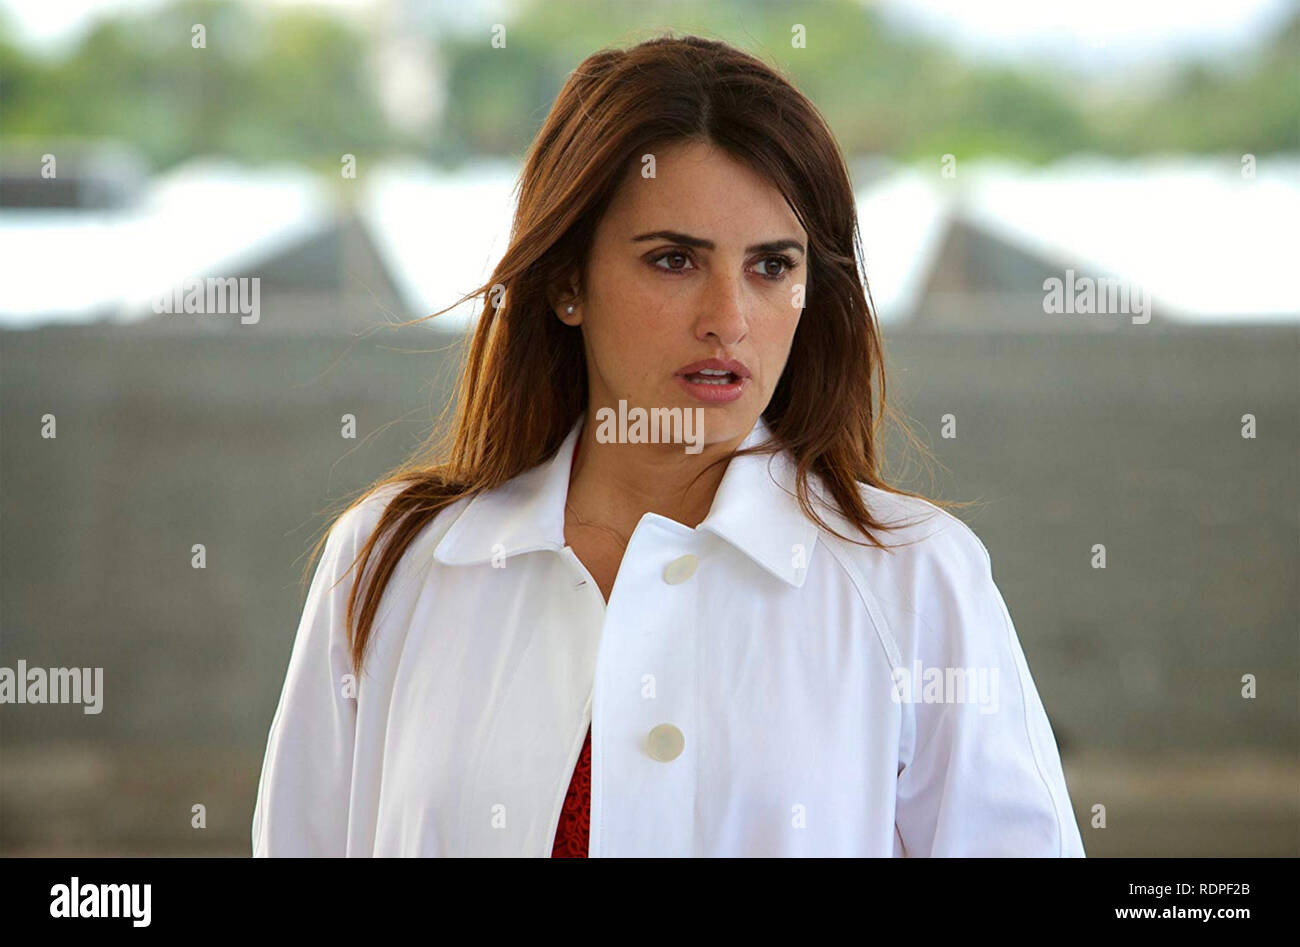 THE COUNSELLOR 2013 film with Penélope Cruz - Stock Image